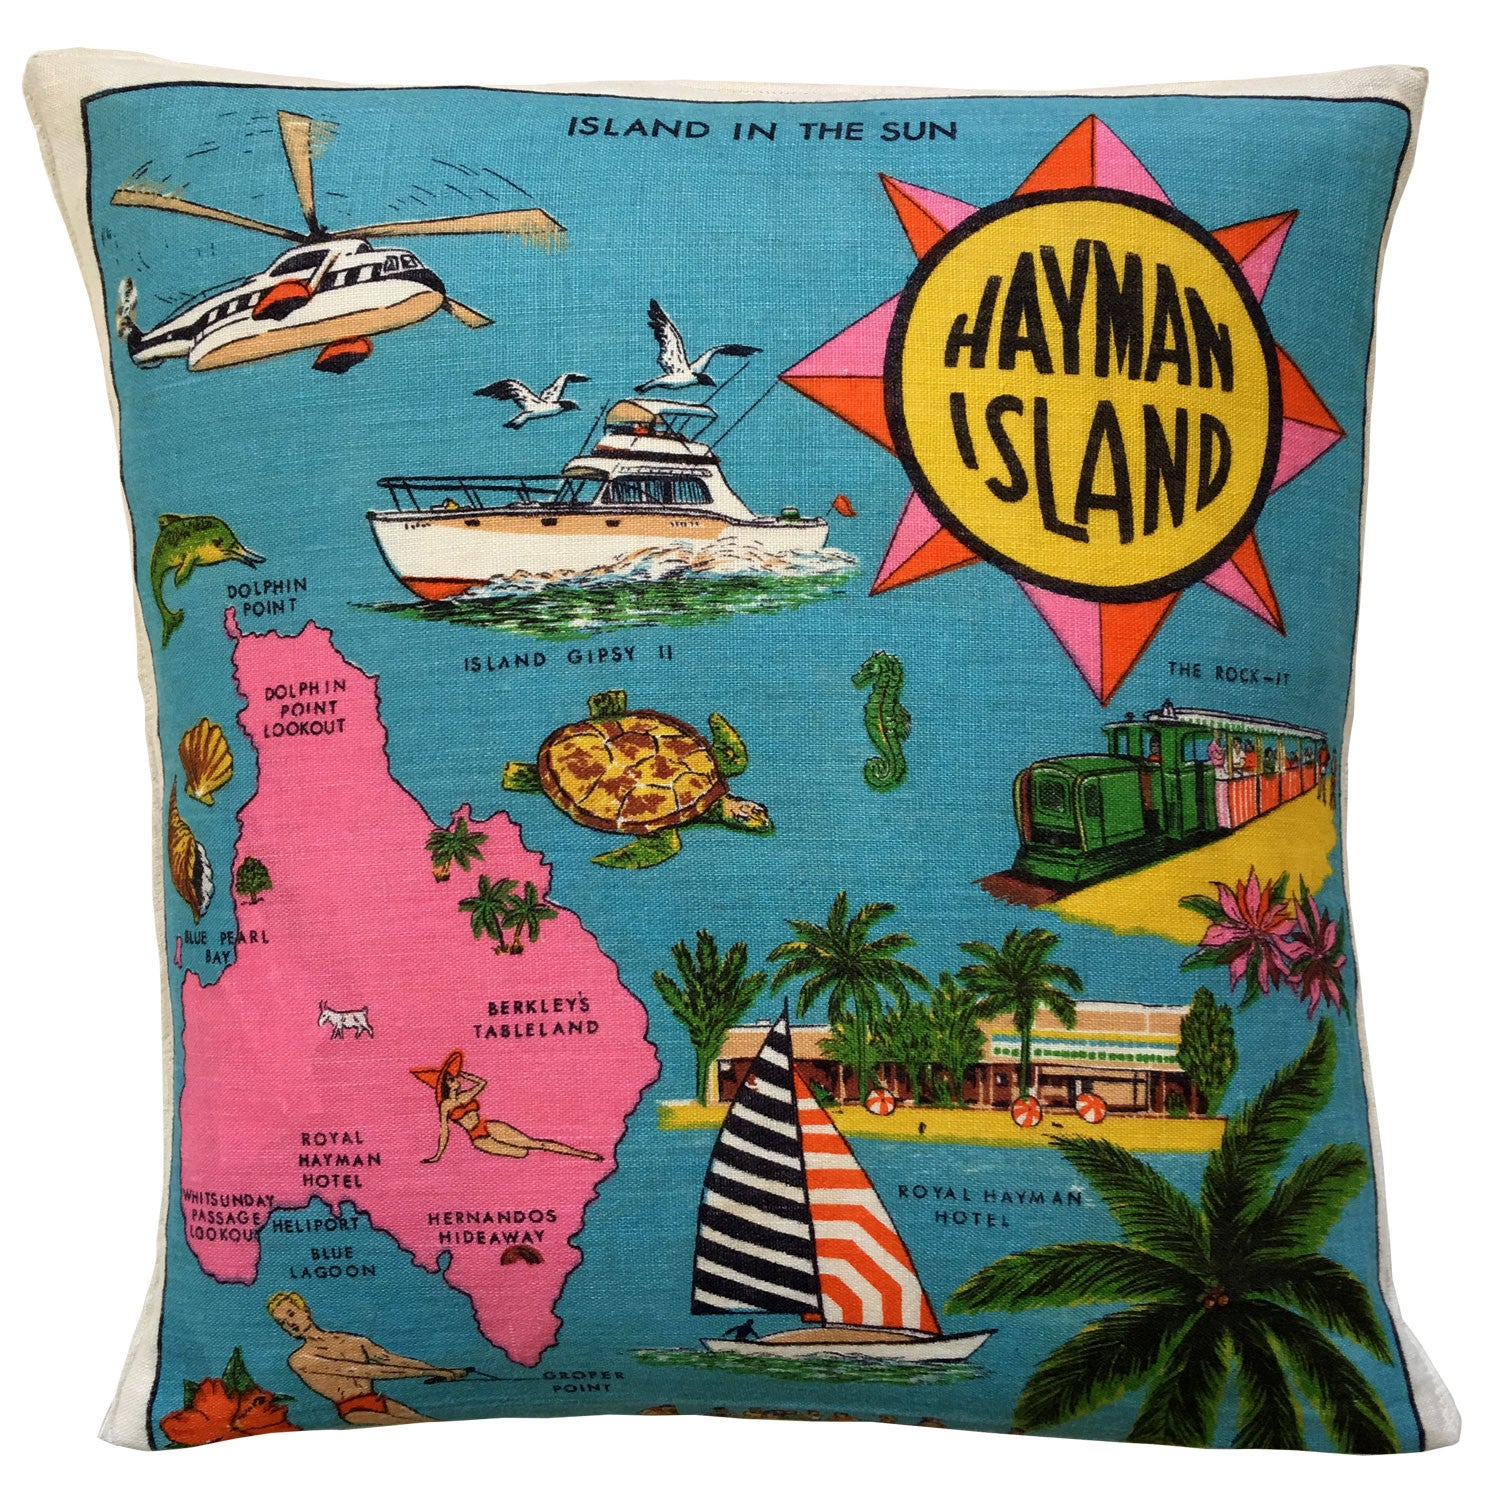 Buy funky Hayman Island cushion cover break the ice at parties